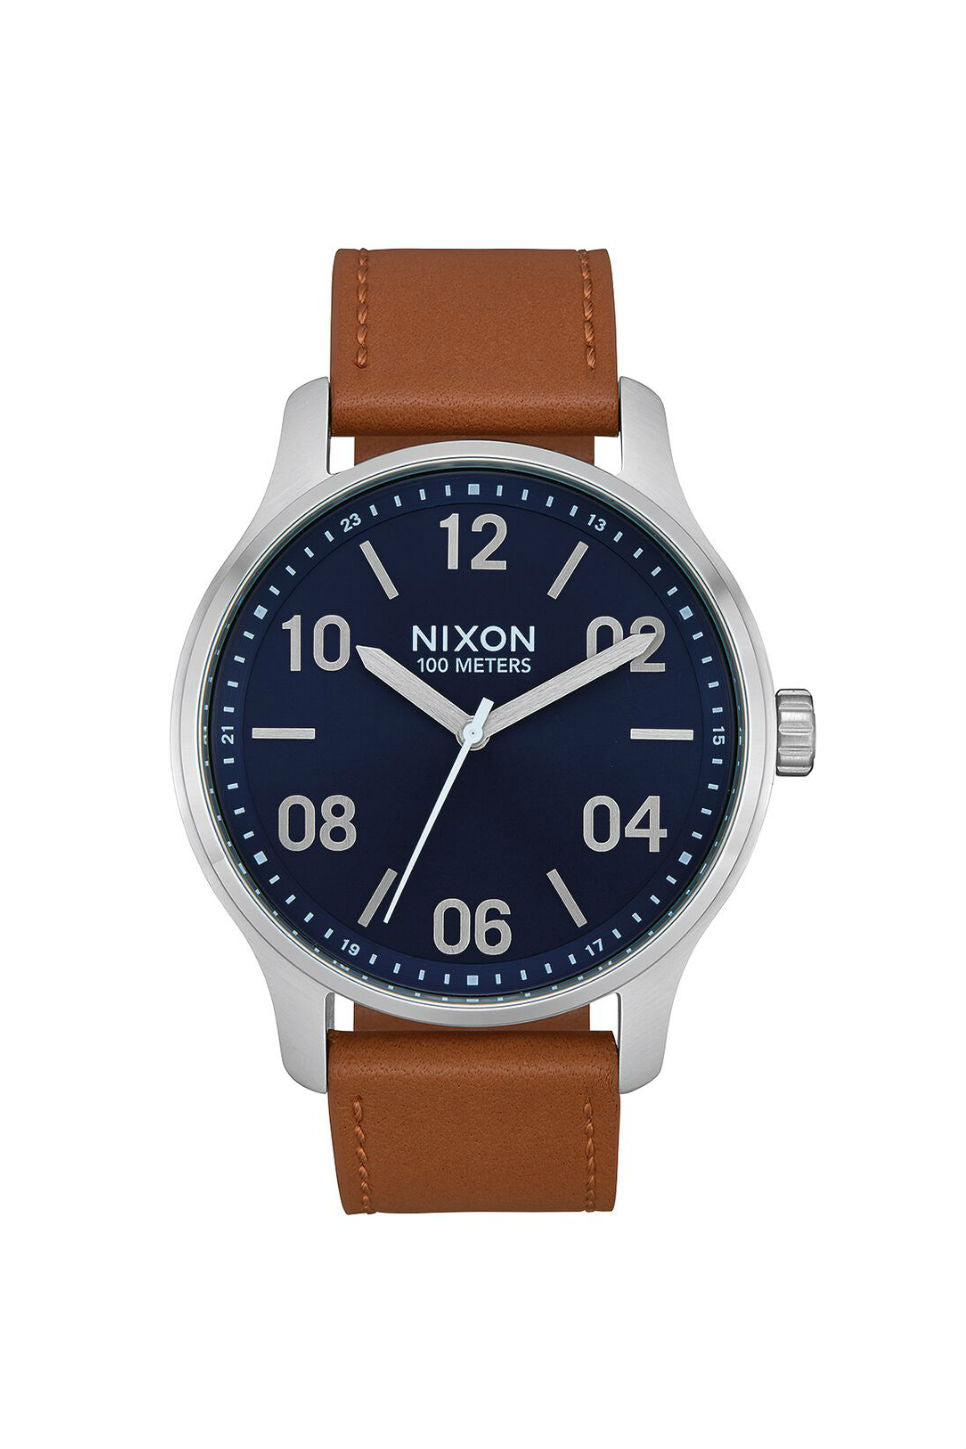 Nixon - Patrol Leather Watch - Navy/Saddle - Front